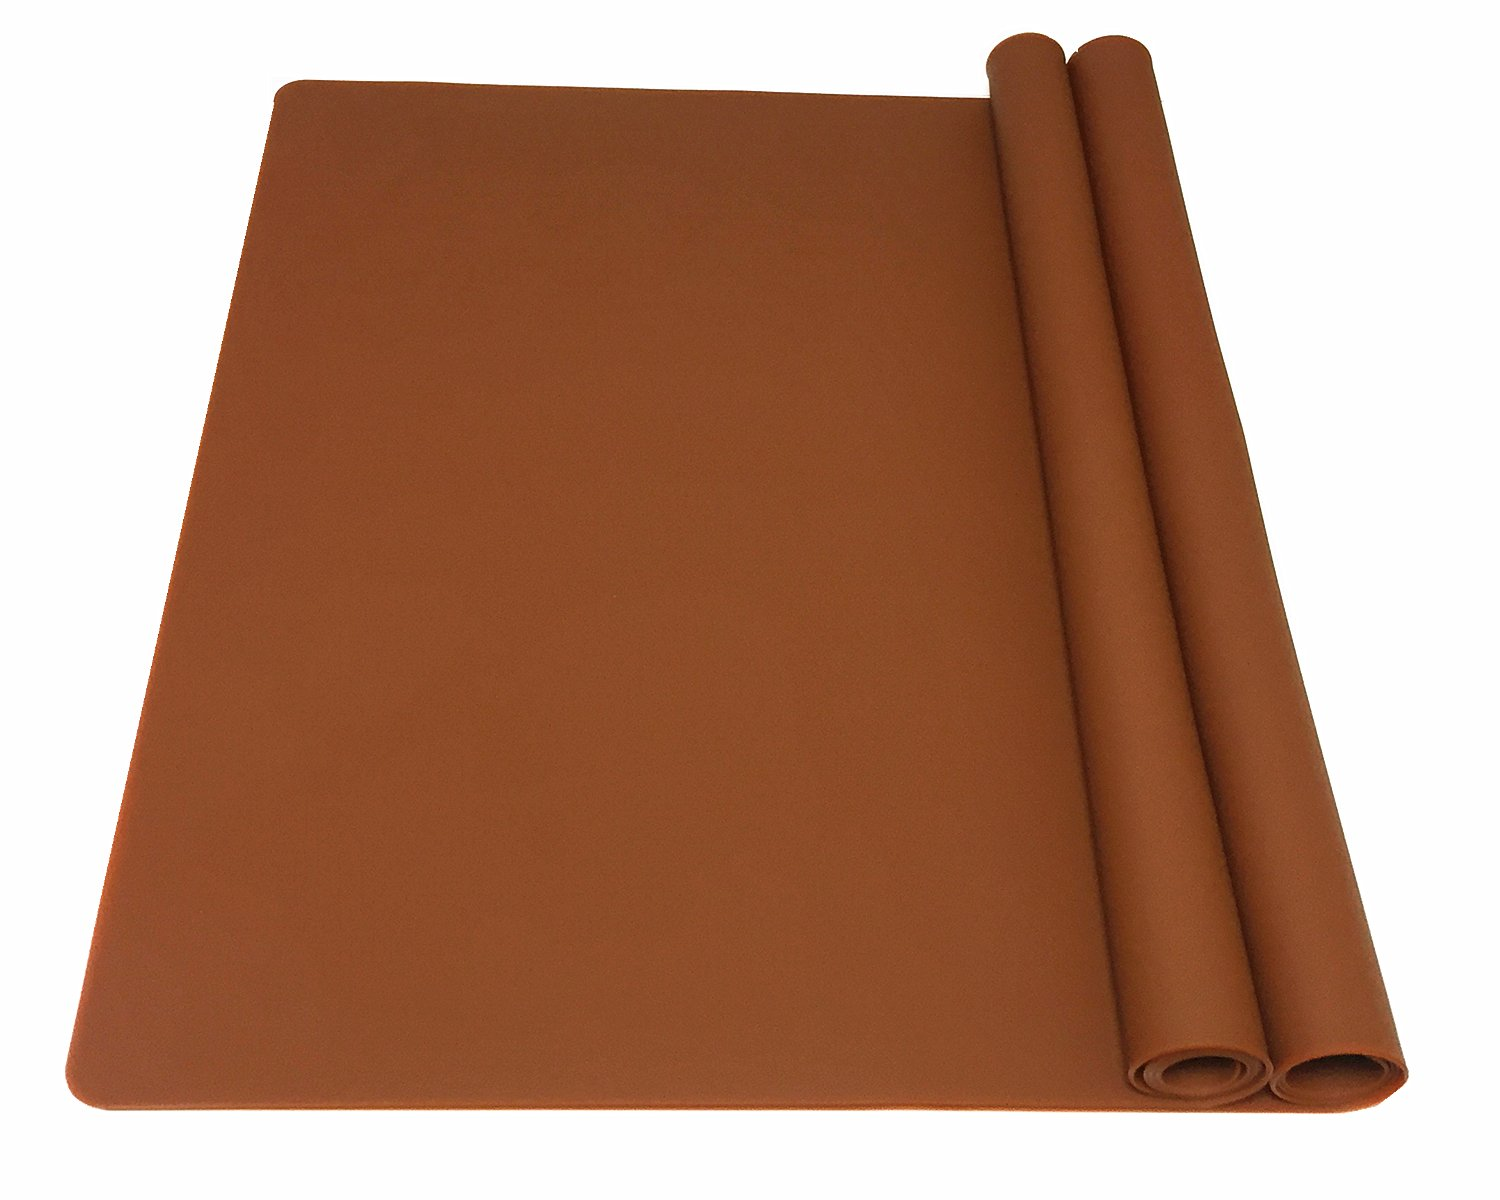 EPHome 2Pack Extra Large Multipurpose Silicone Nonstick Pastry Mat, Heat Resistant Nonskid Table Mat, Countertop Protector, 23.6''15.75'' (Chocolate)